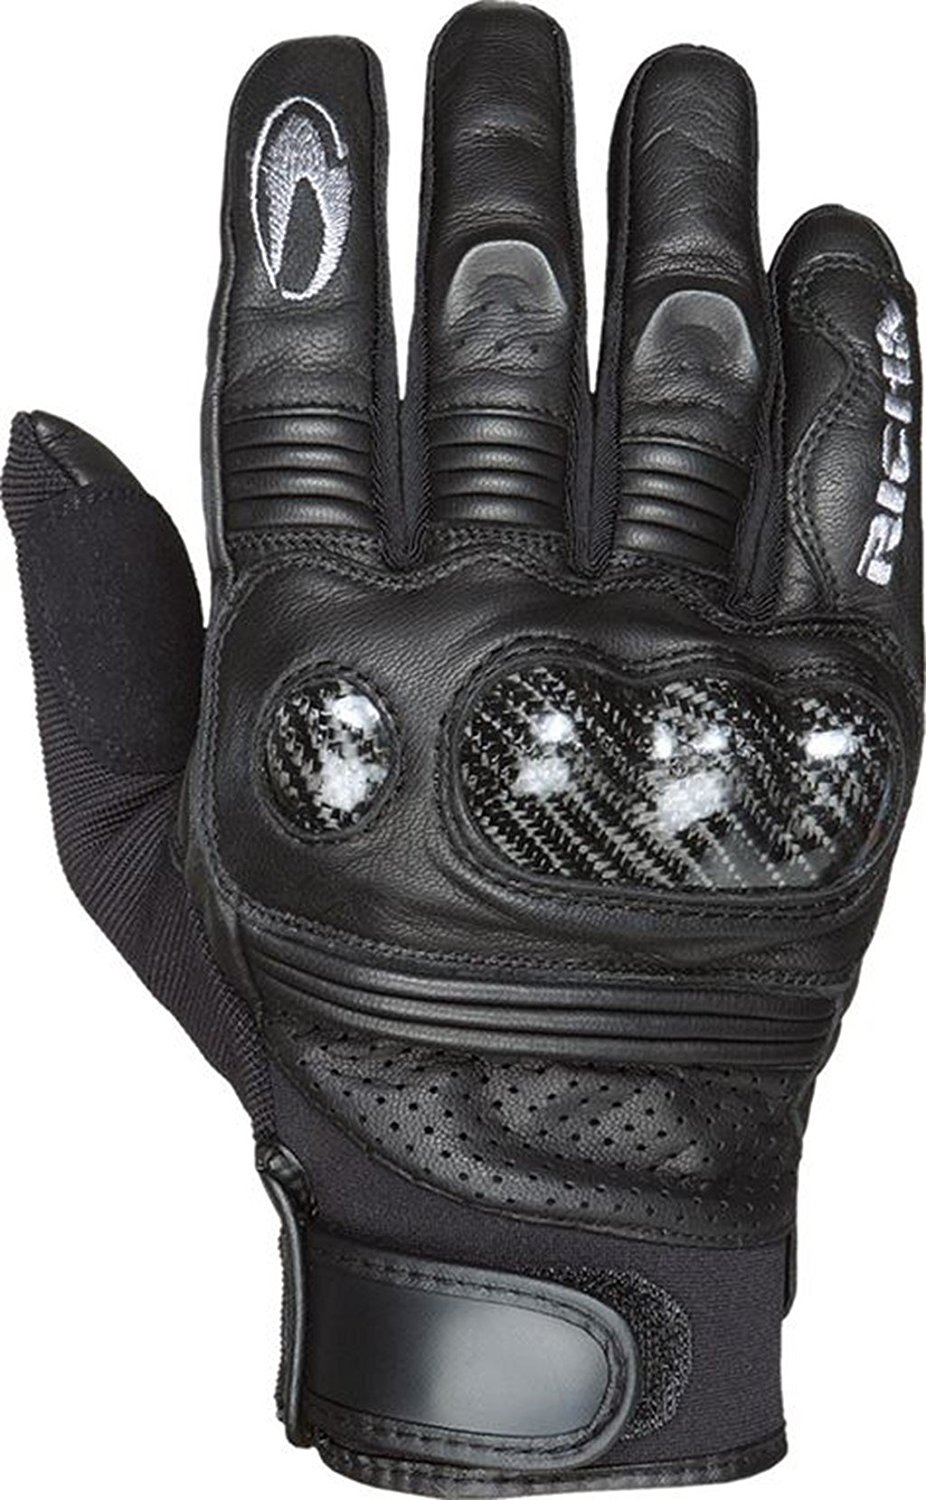 Richa Protect Summer Mens Motorbike Motorcycle Glove Black